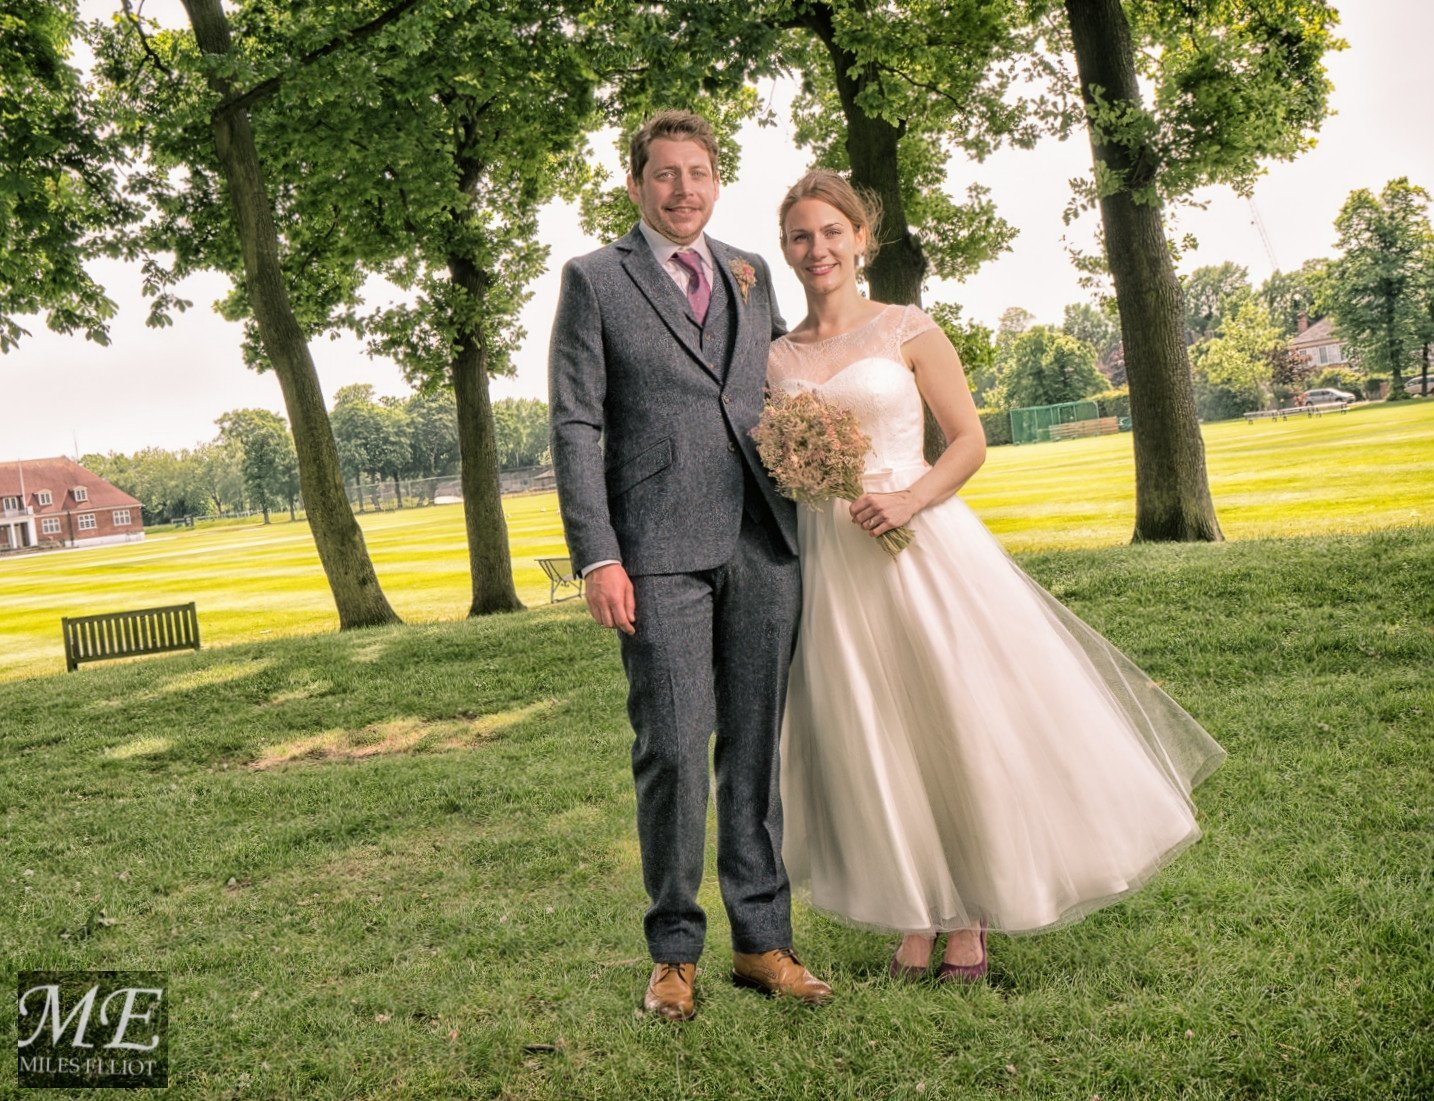 Anja and Brett May 2016. Anja wears her White Rose Margaret dress.